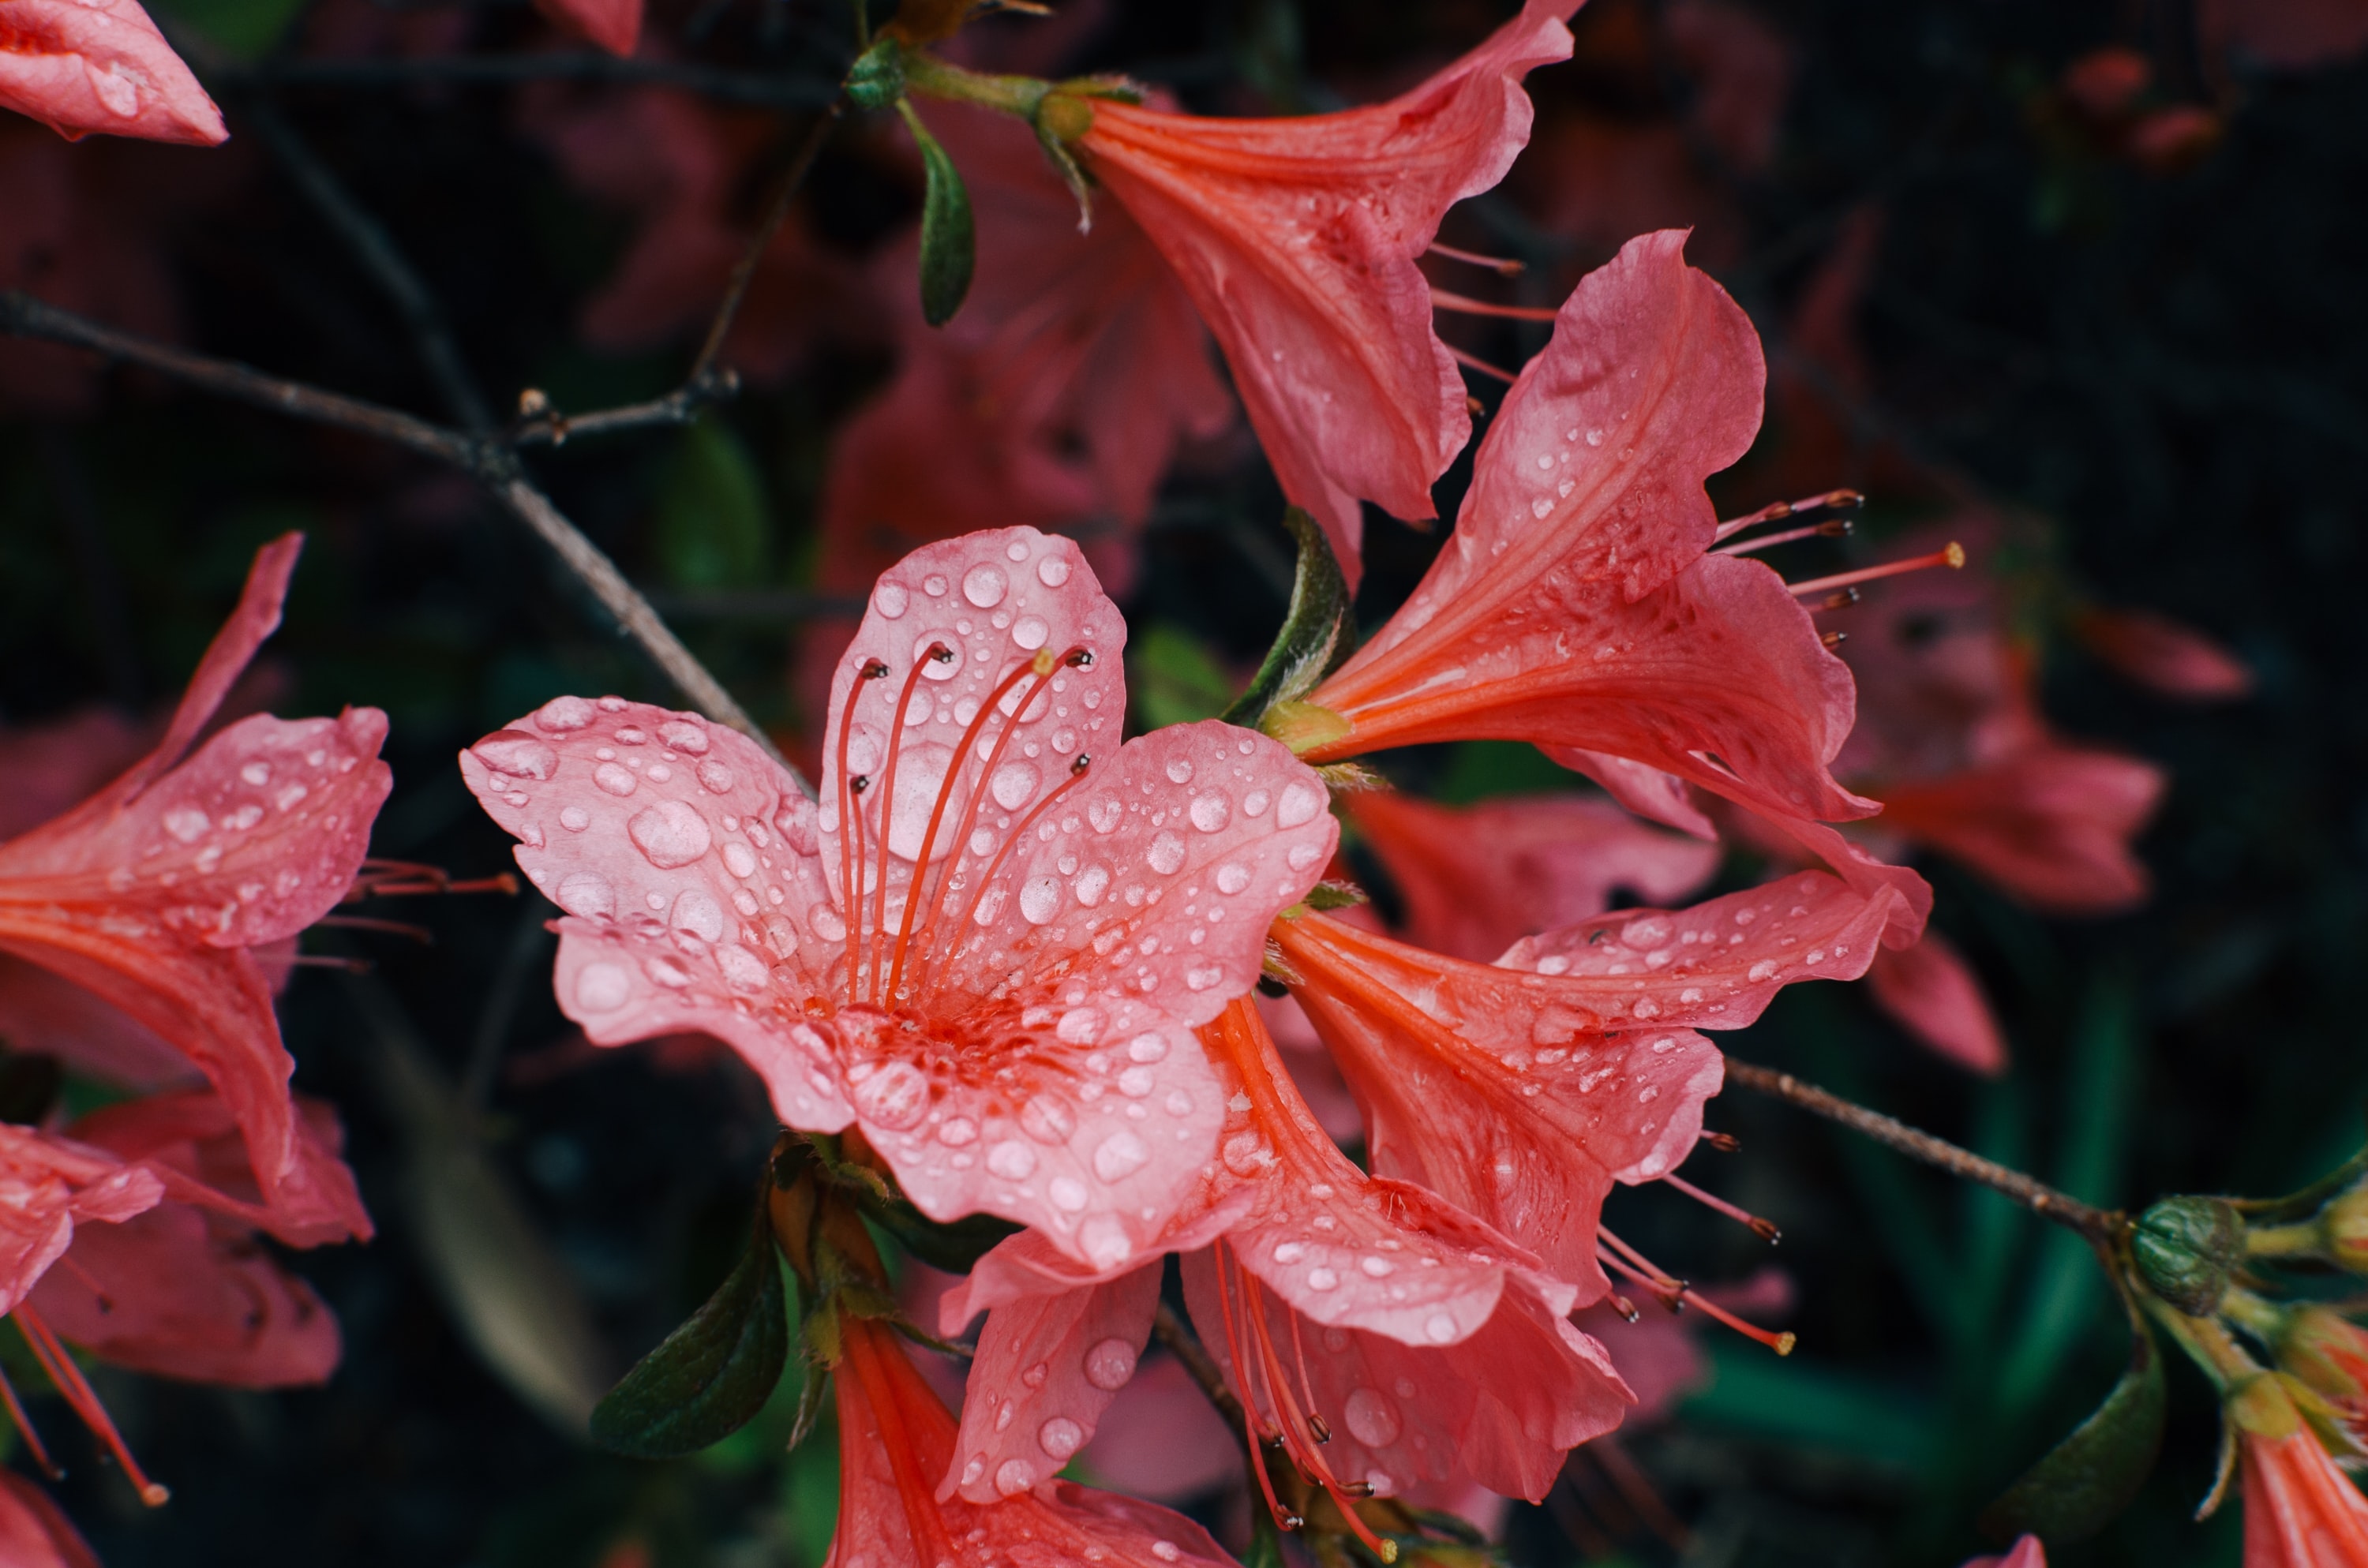 Reddish pink flowers covered in rainfall.